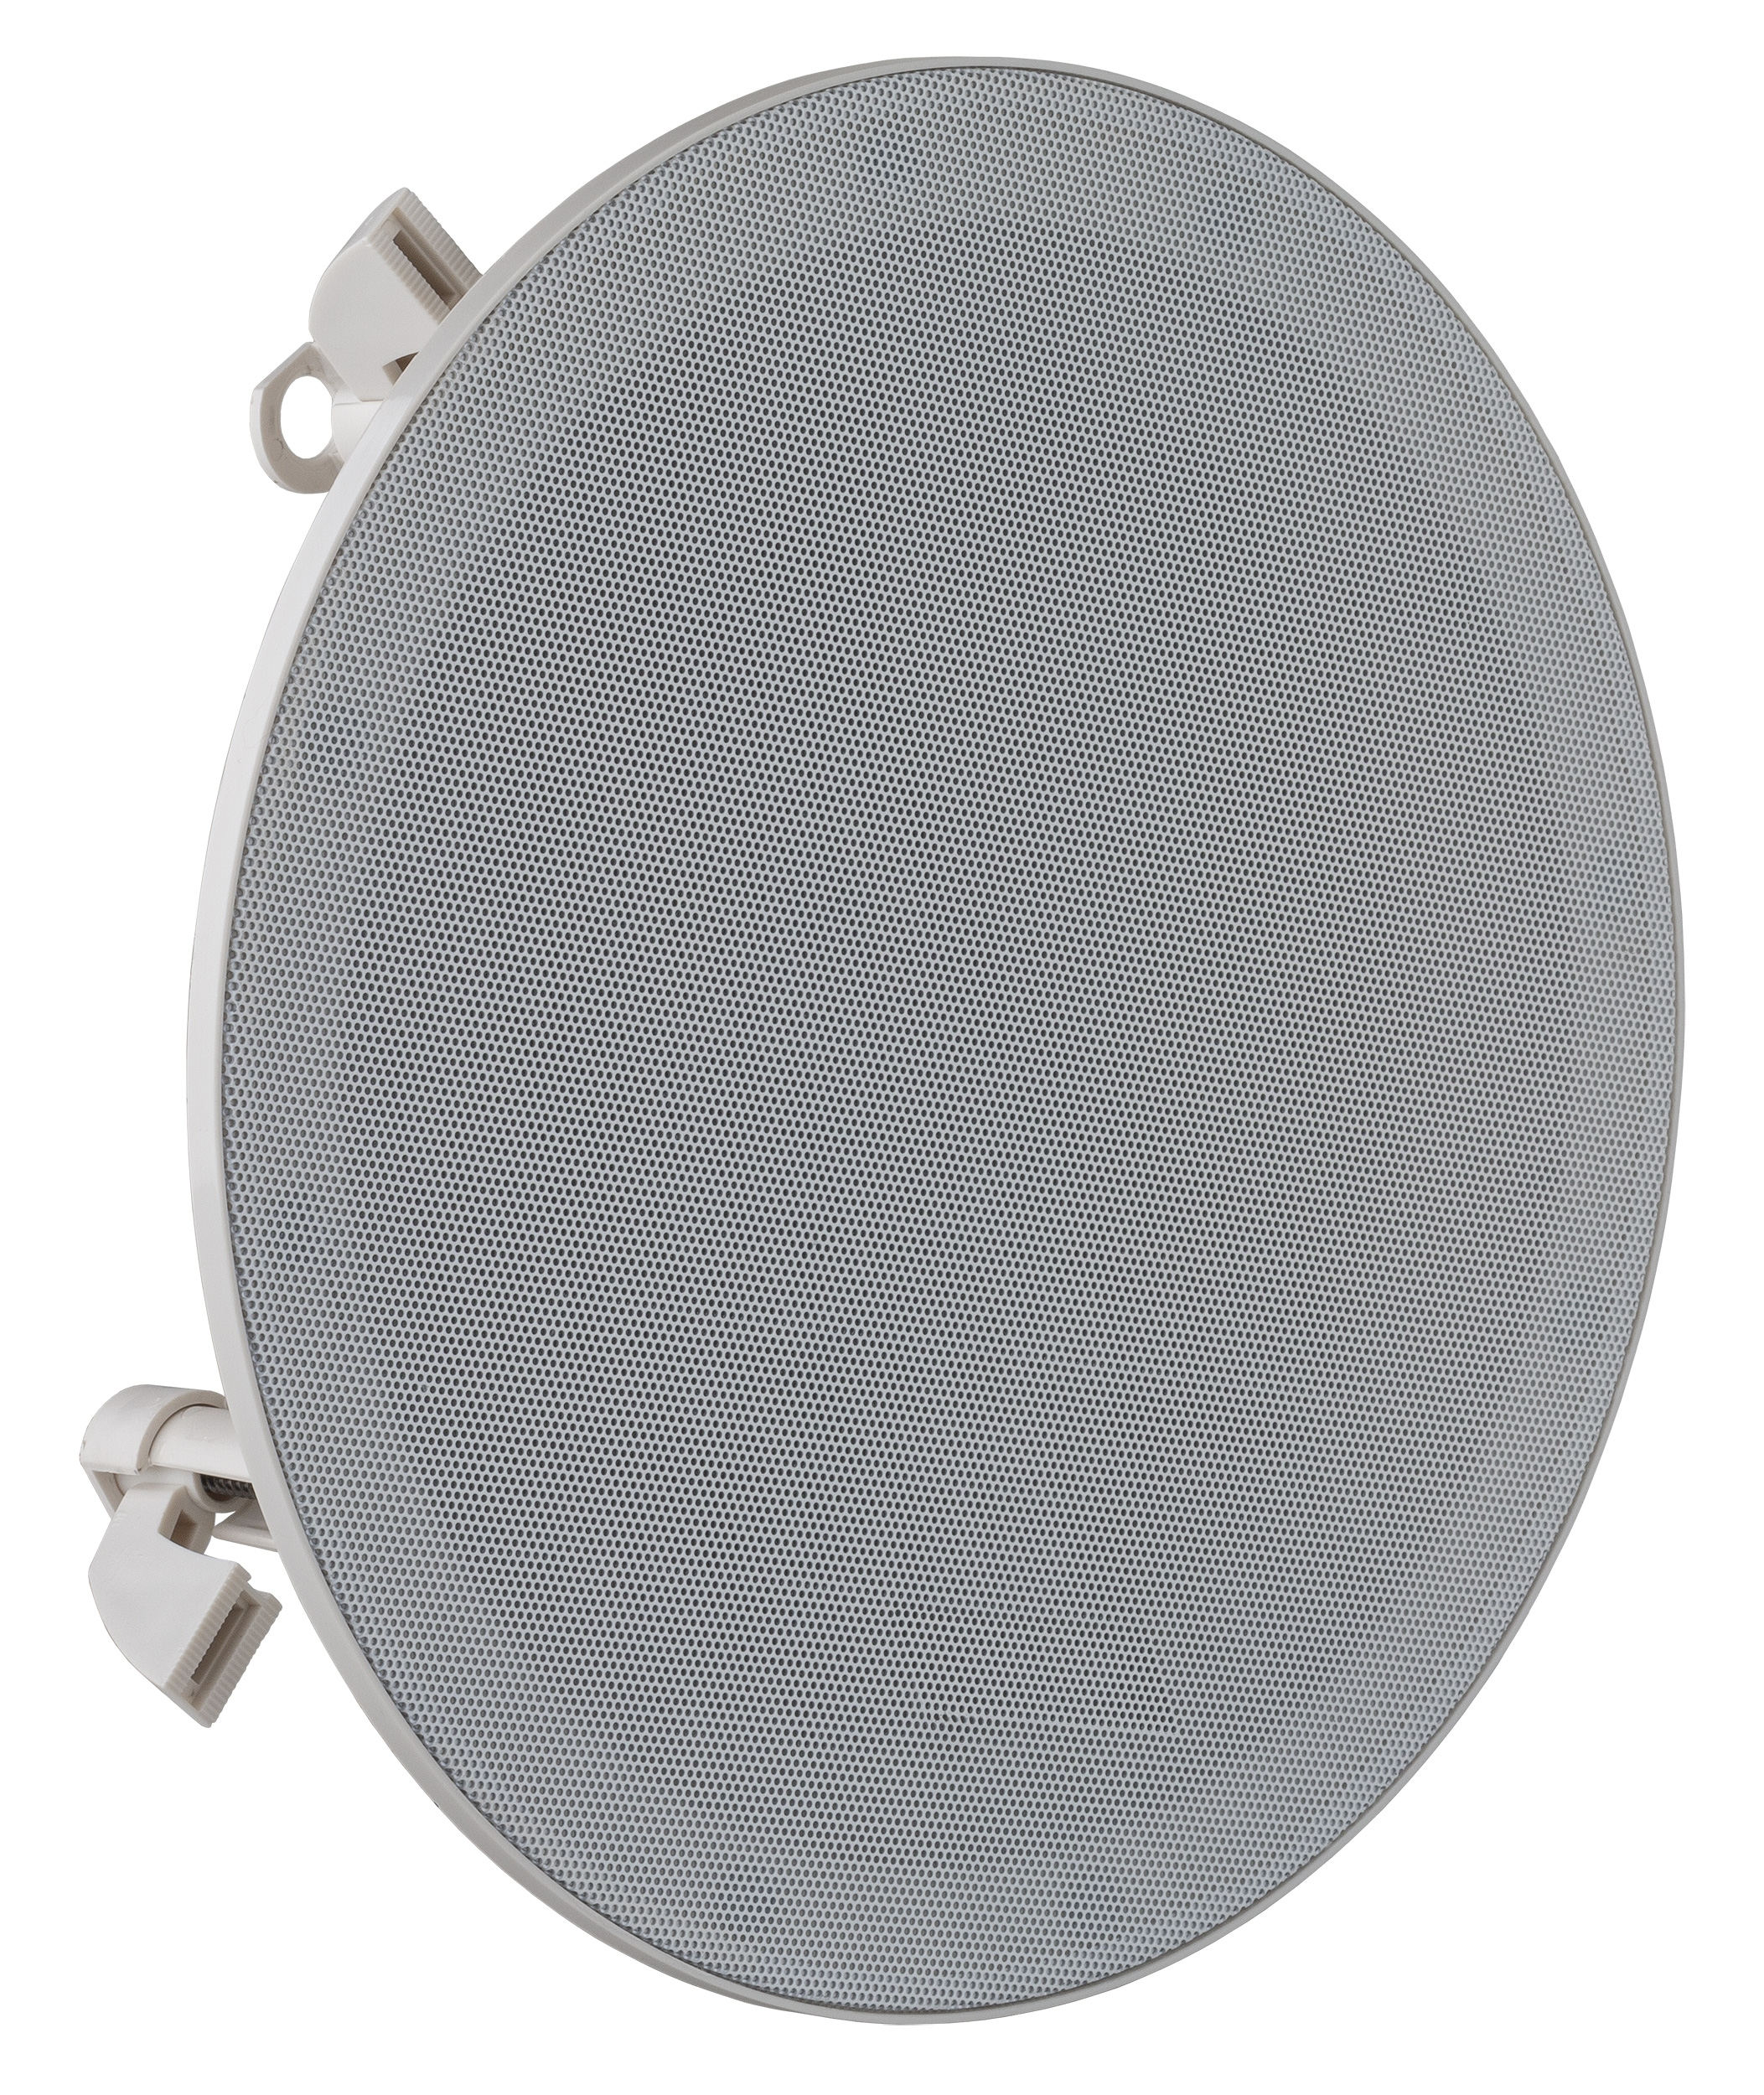 Ceiling speaker 35W RMS at 8 Ohms